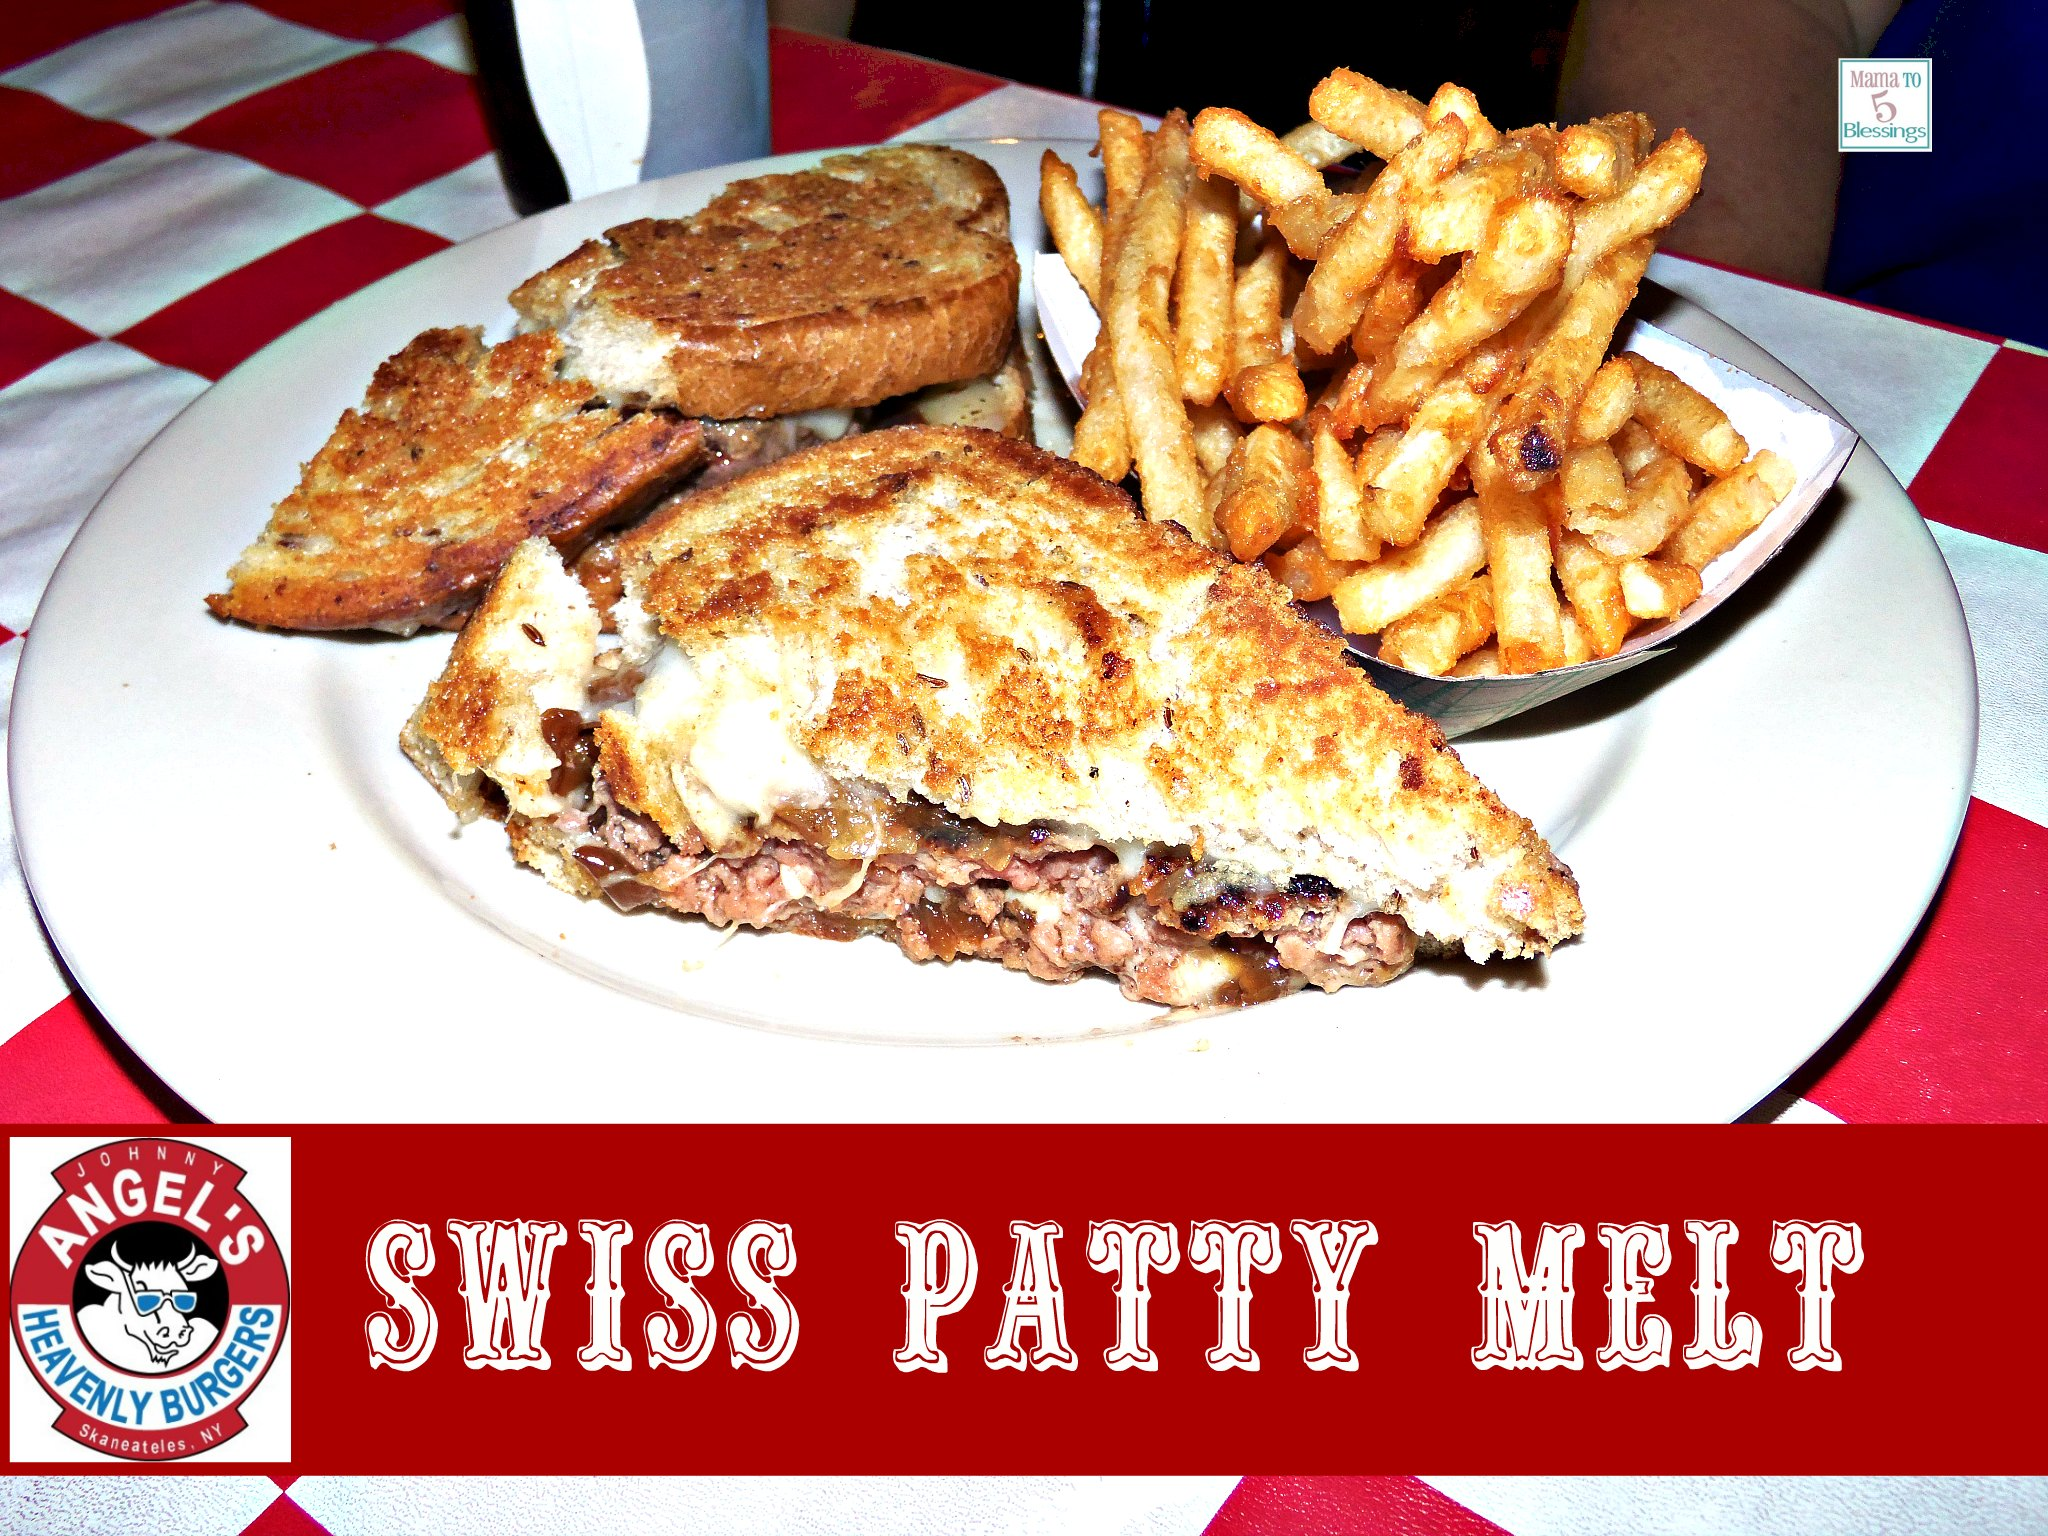 johnny angels patty melt